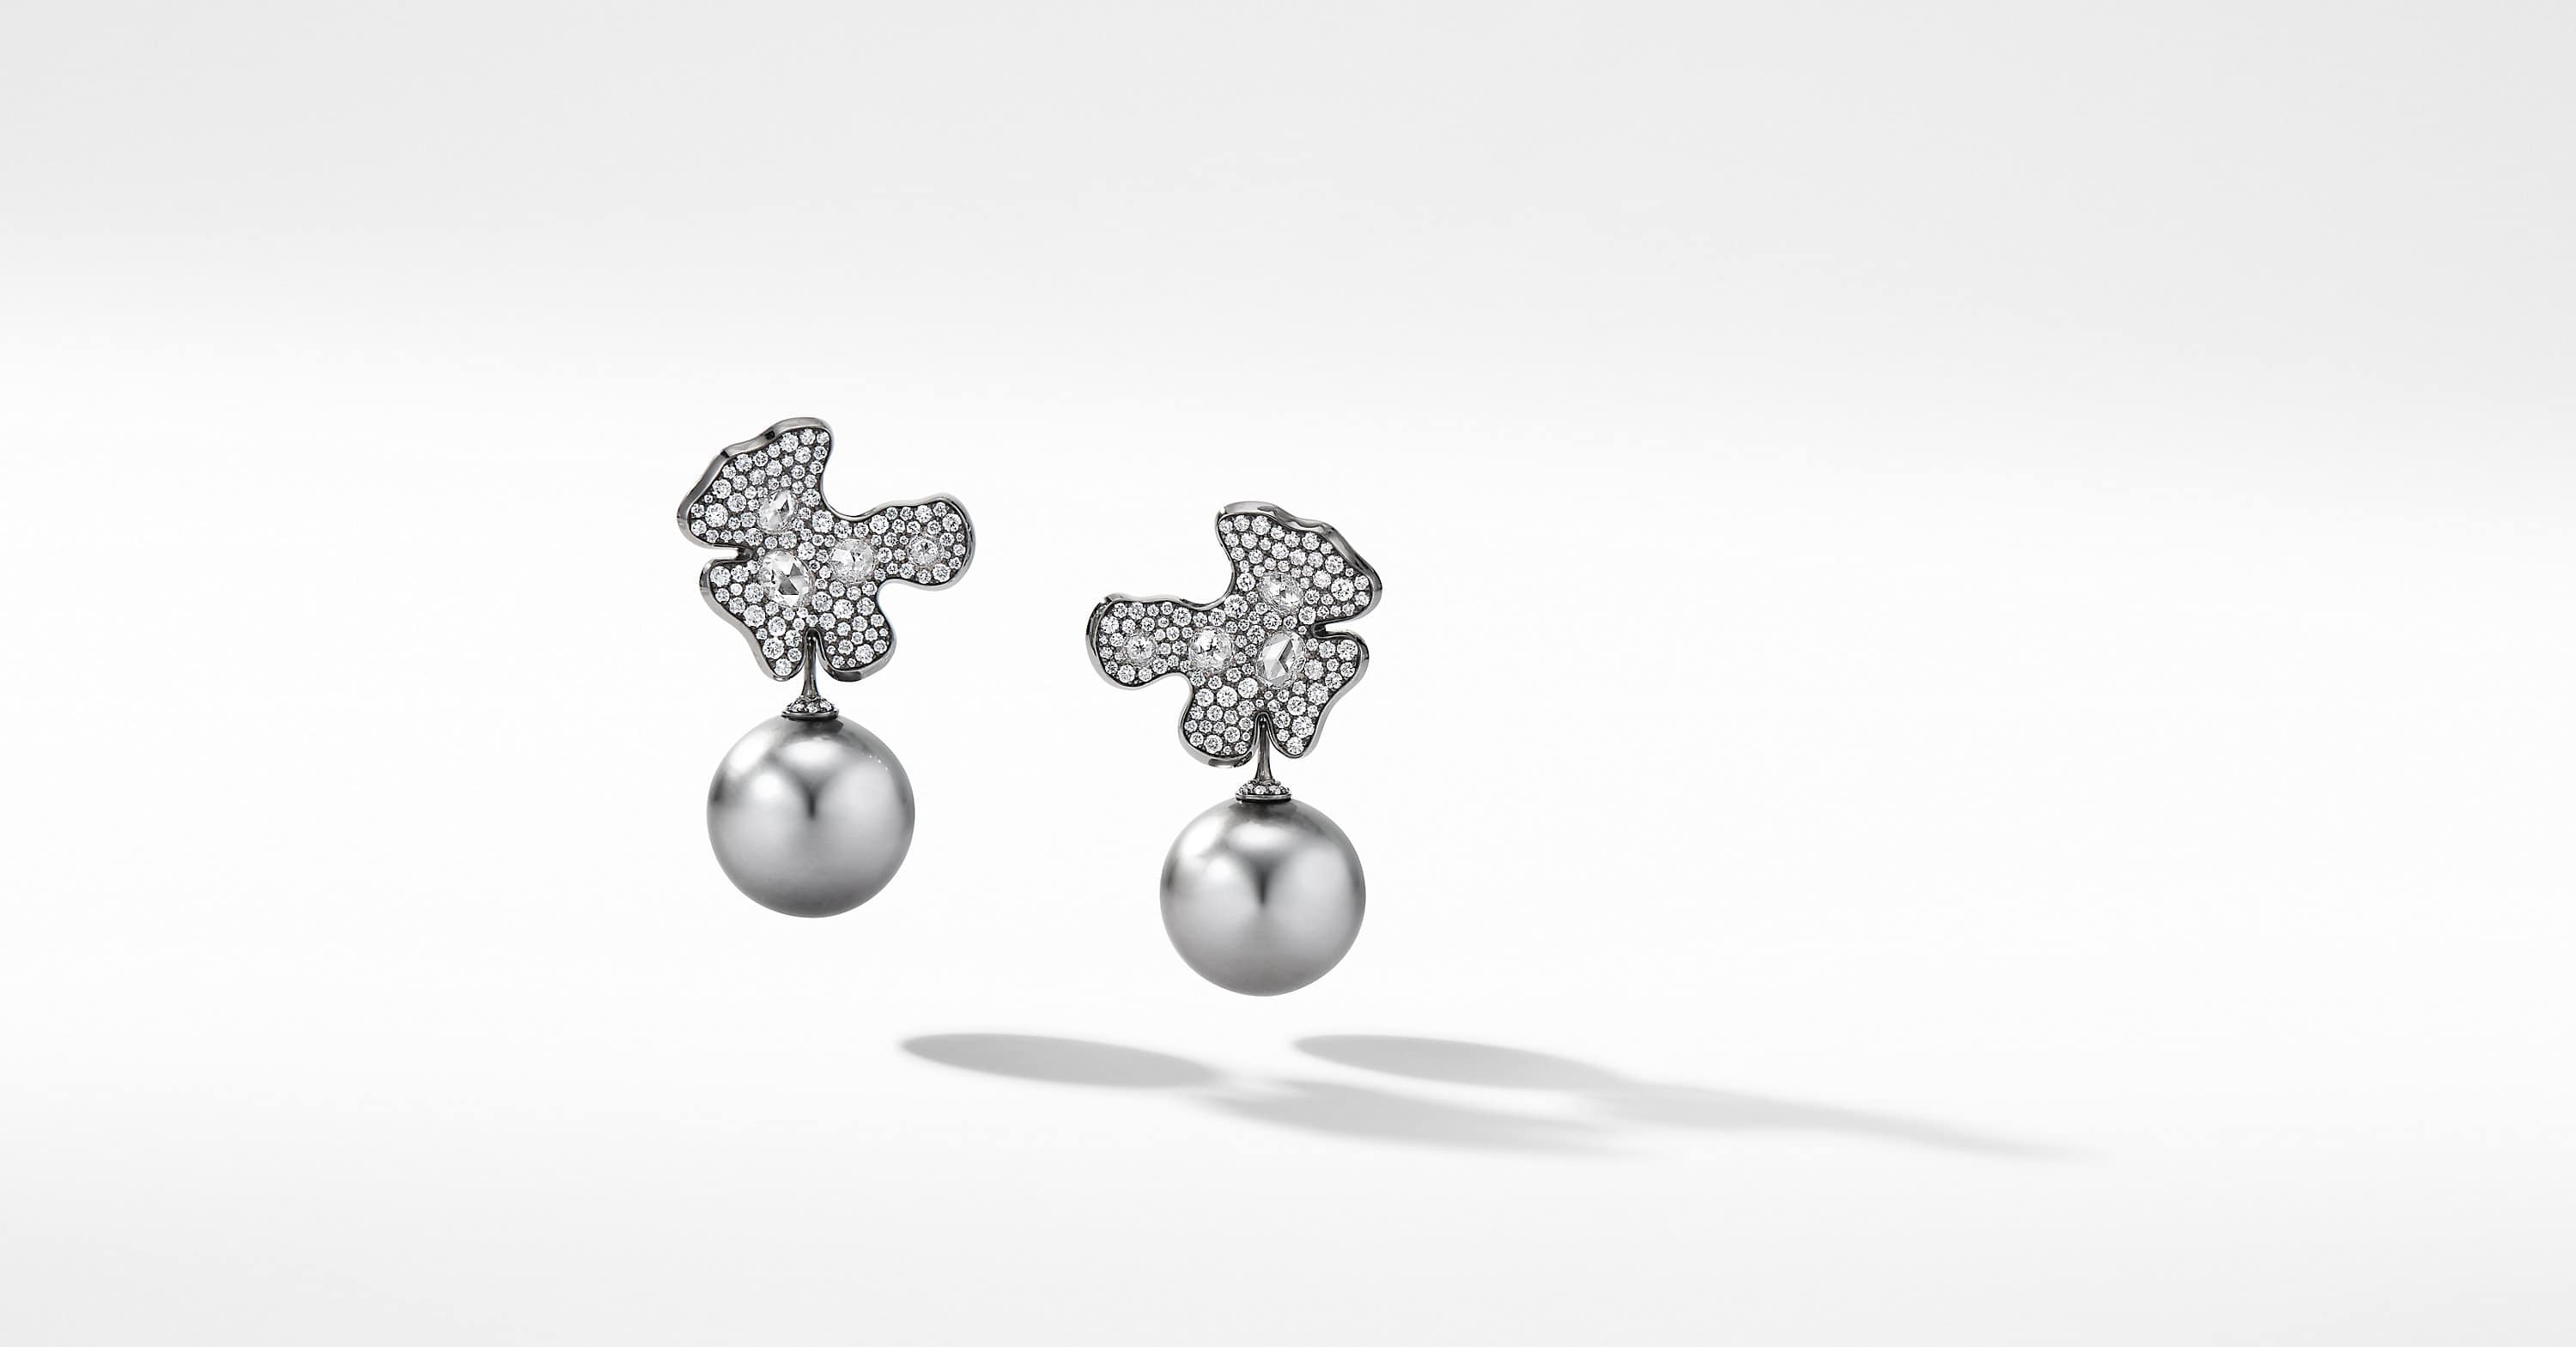 Night Petals Tahitian Pearl Earrings in White Gold with Diamonds